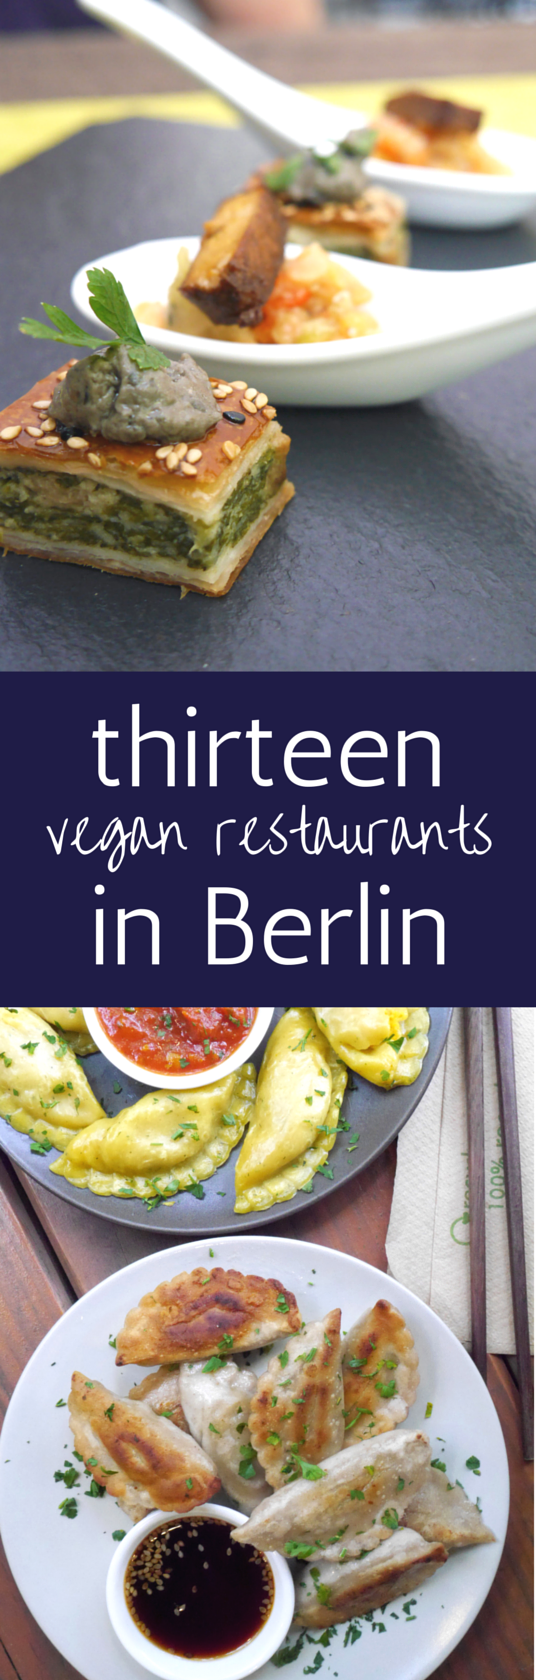 13 fantastisch vegan restaurants in berlin not to miss berlin pinterest vegane restaurants. Black Bedroom Furniture Sets. Home Design Ideas